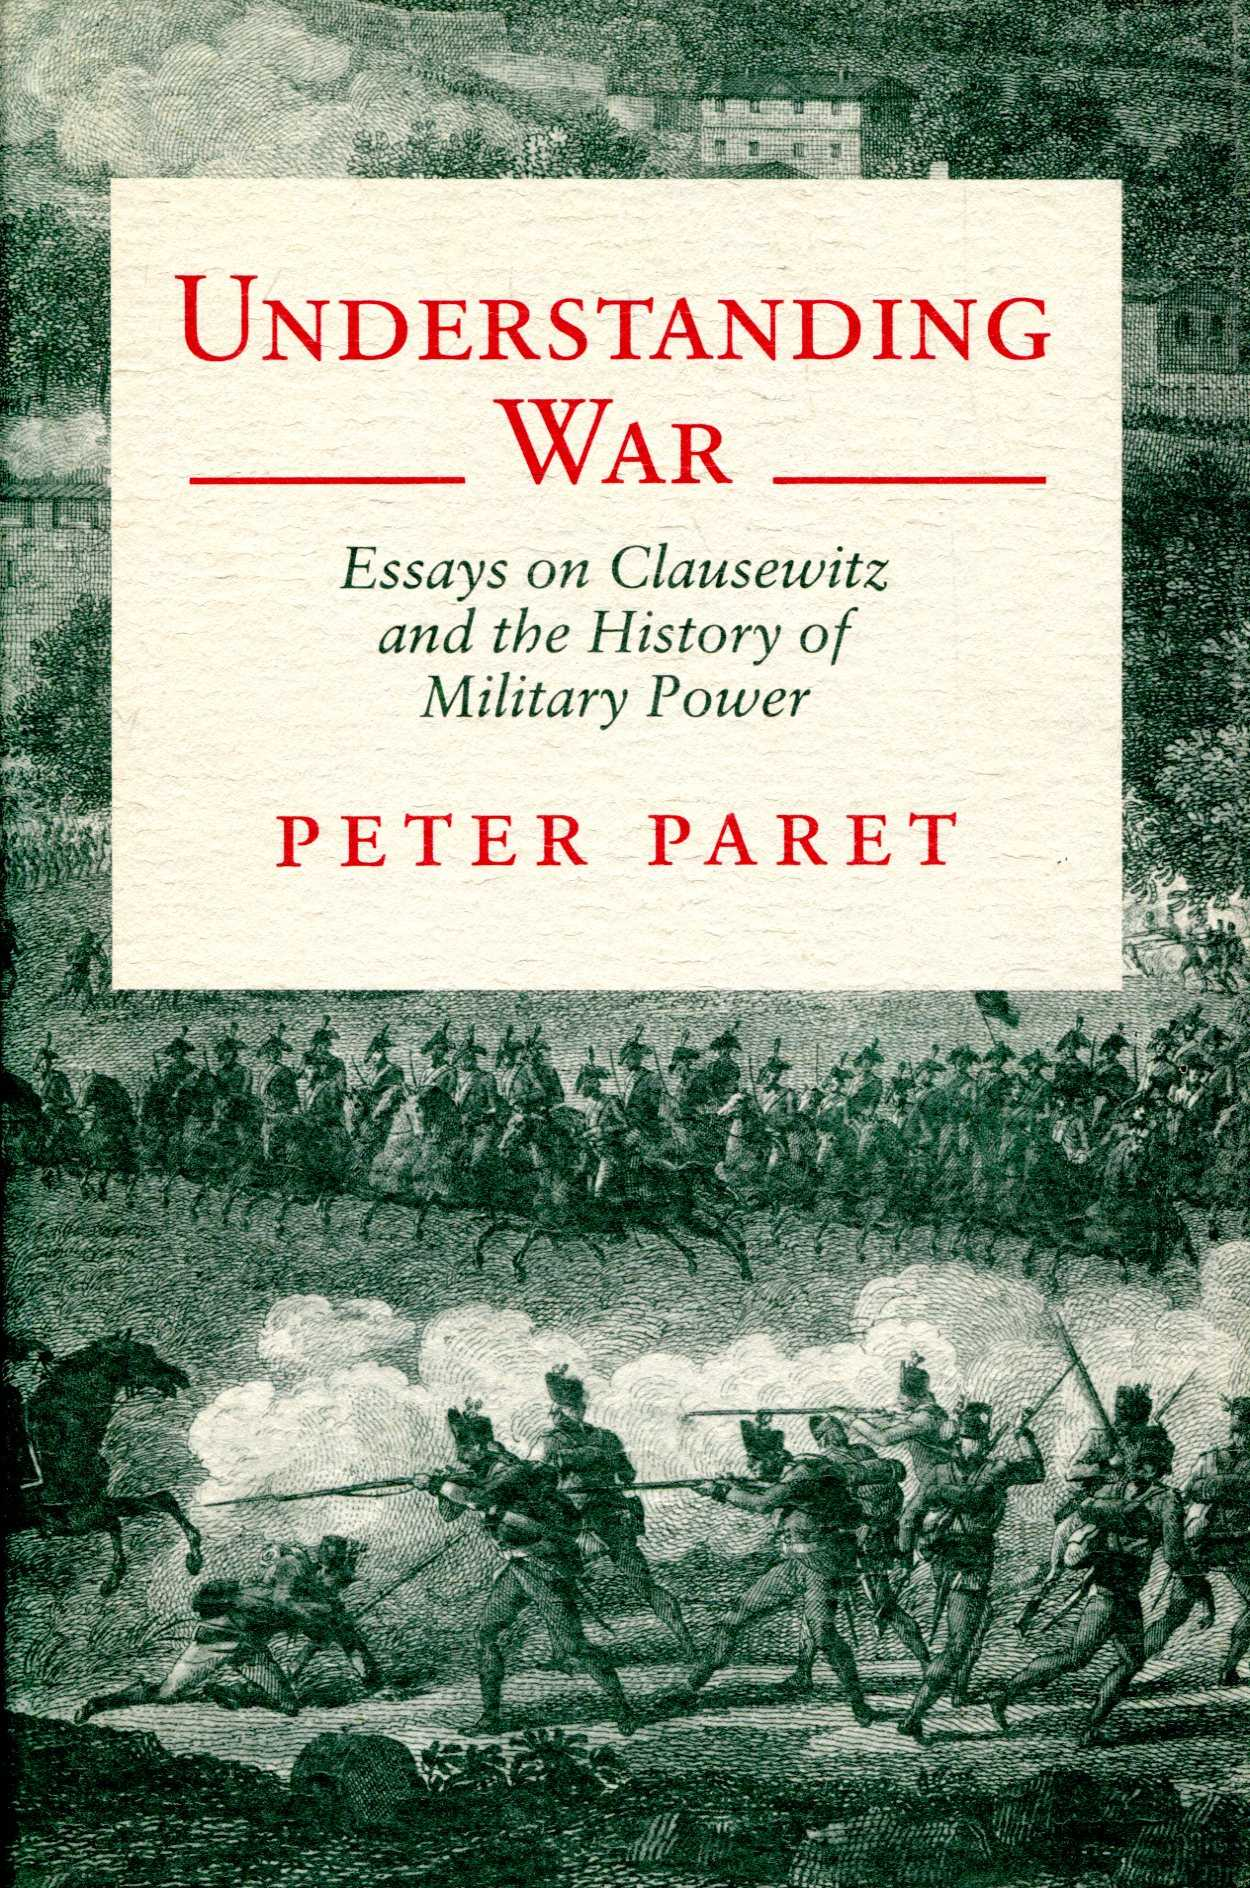 Image for Understanding War: Essays on Clausewitz and the History of Military Power